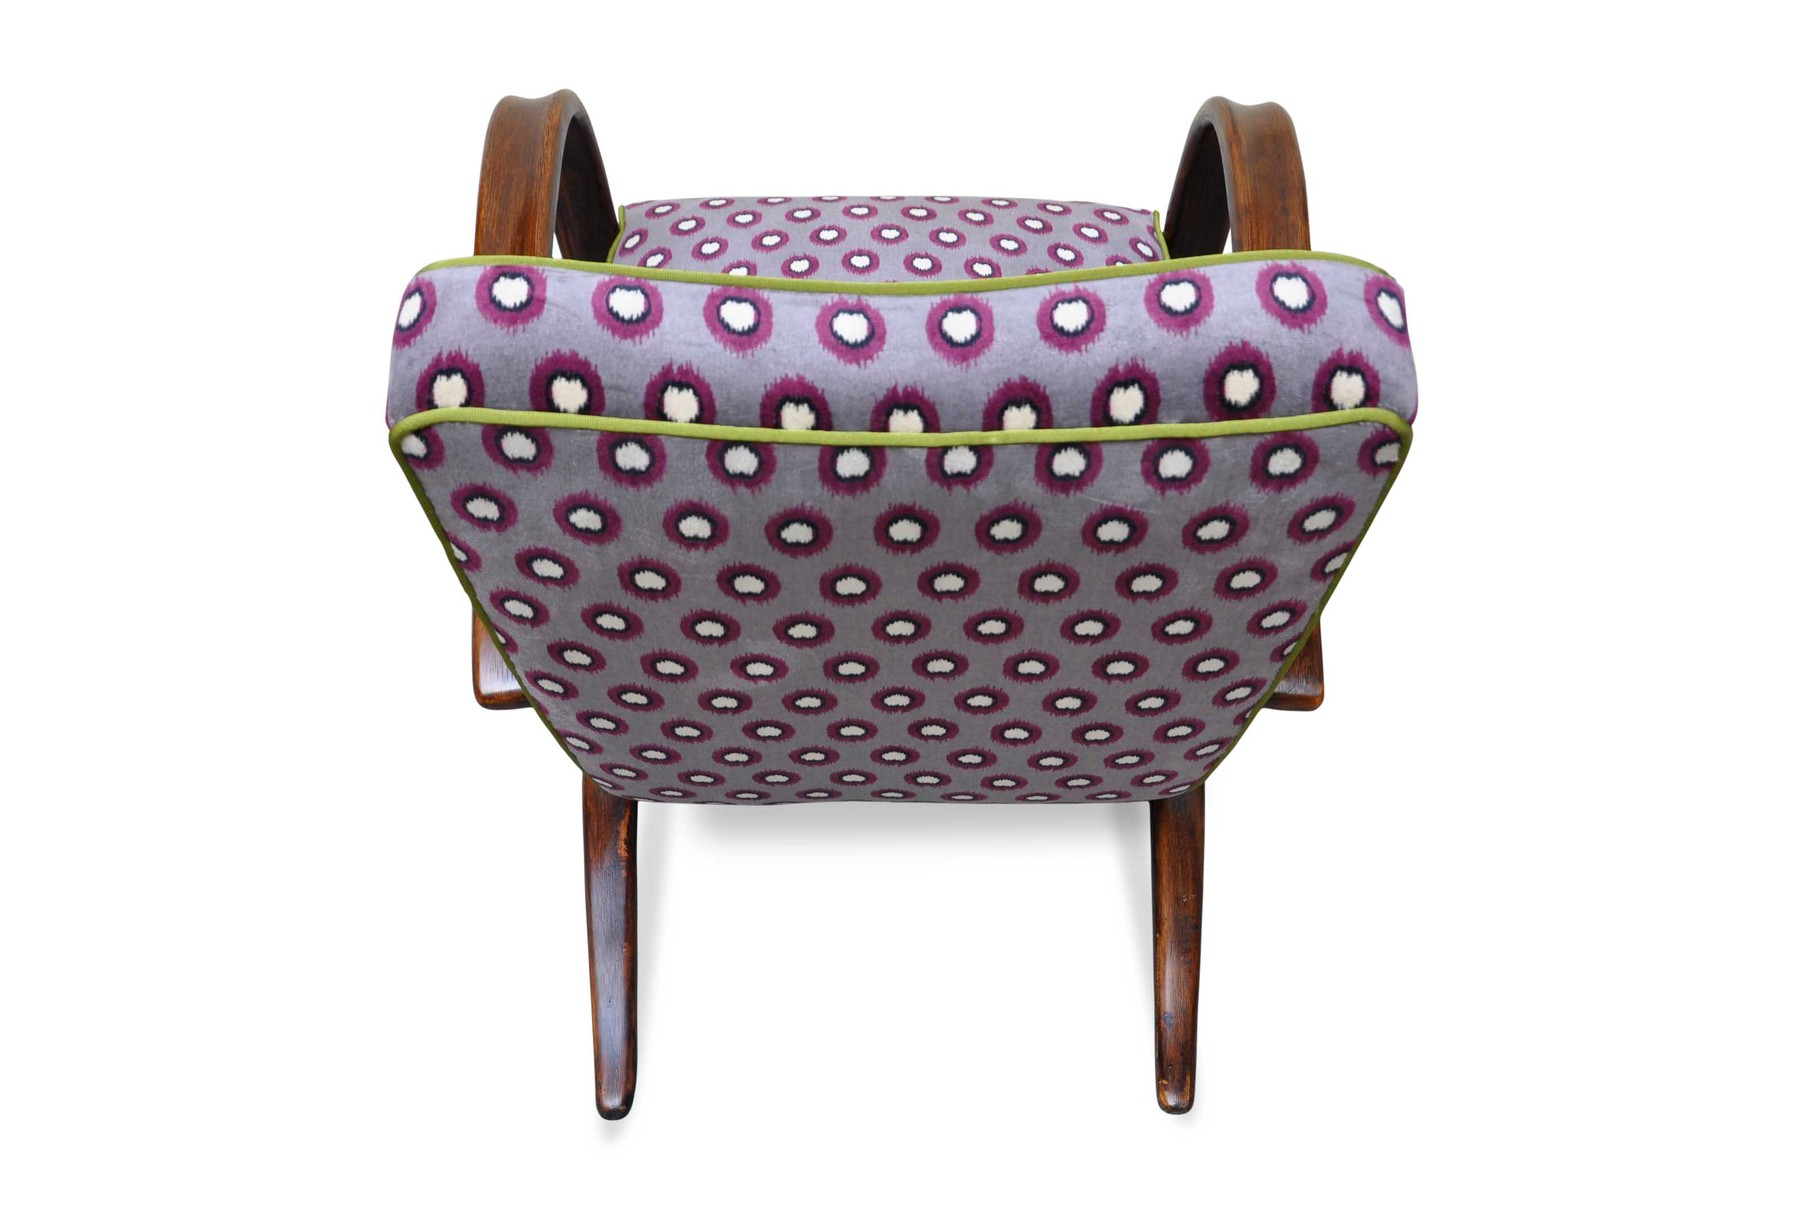 halabala chair h269 for sale